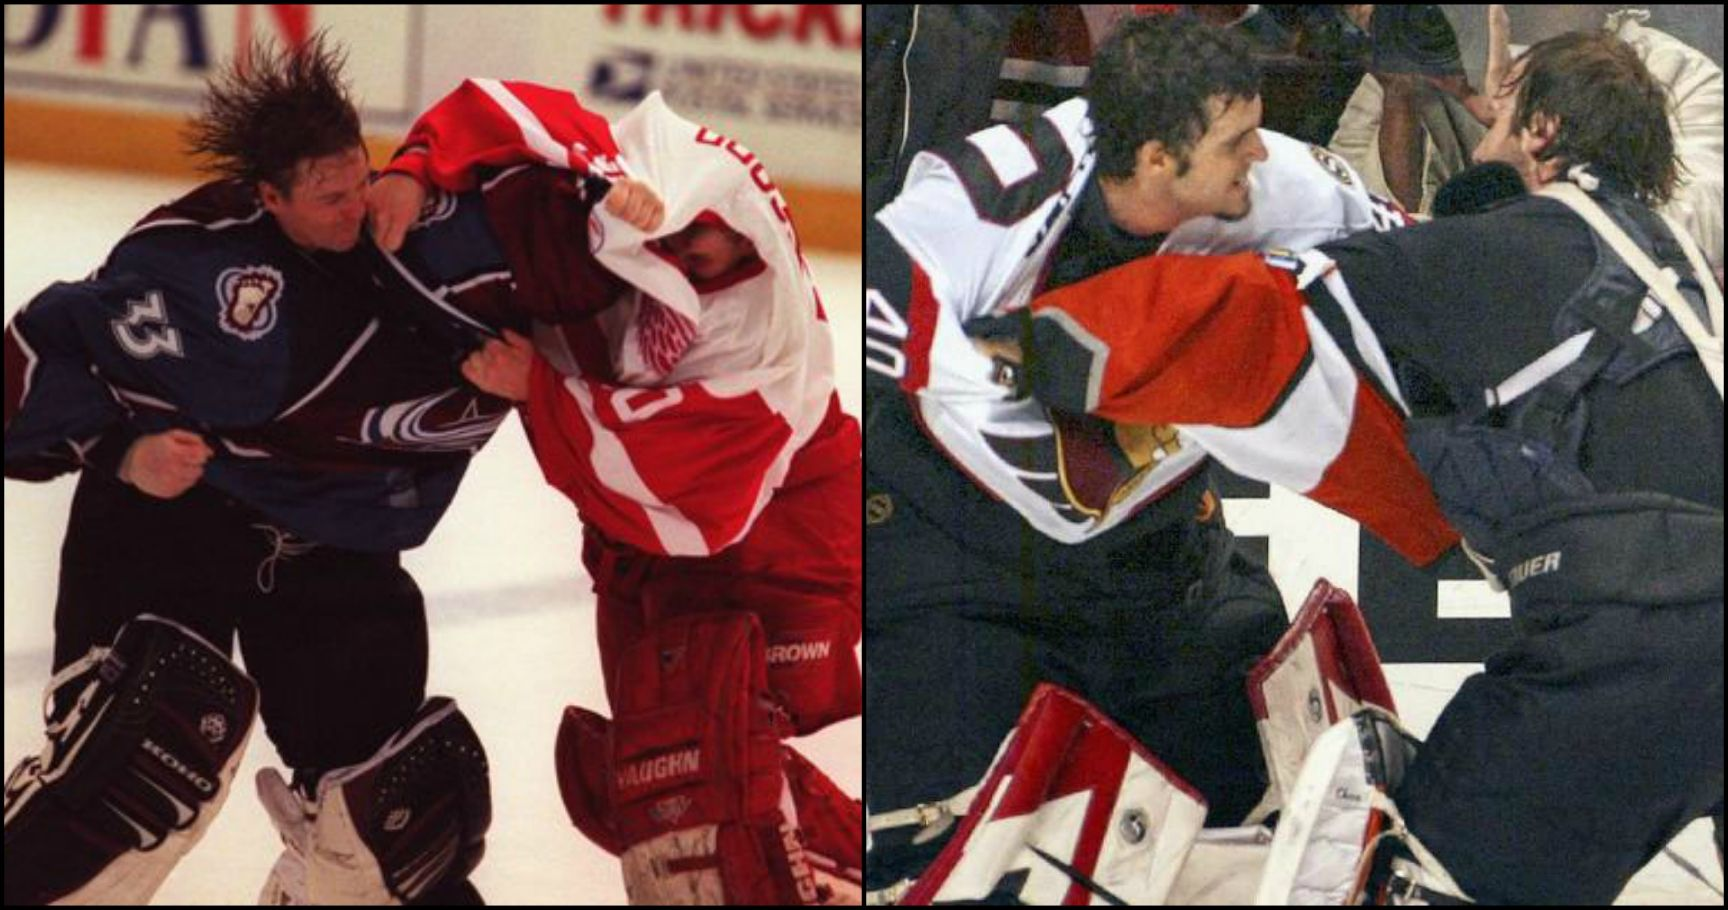 Top 10 Worst Hockey Brawls of All Time